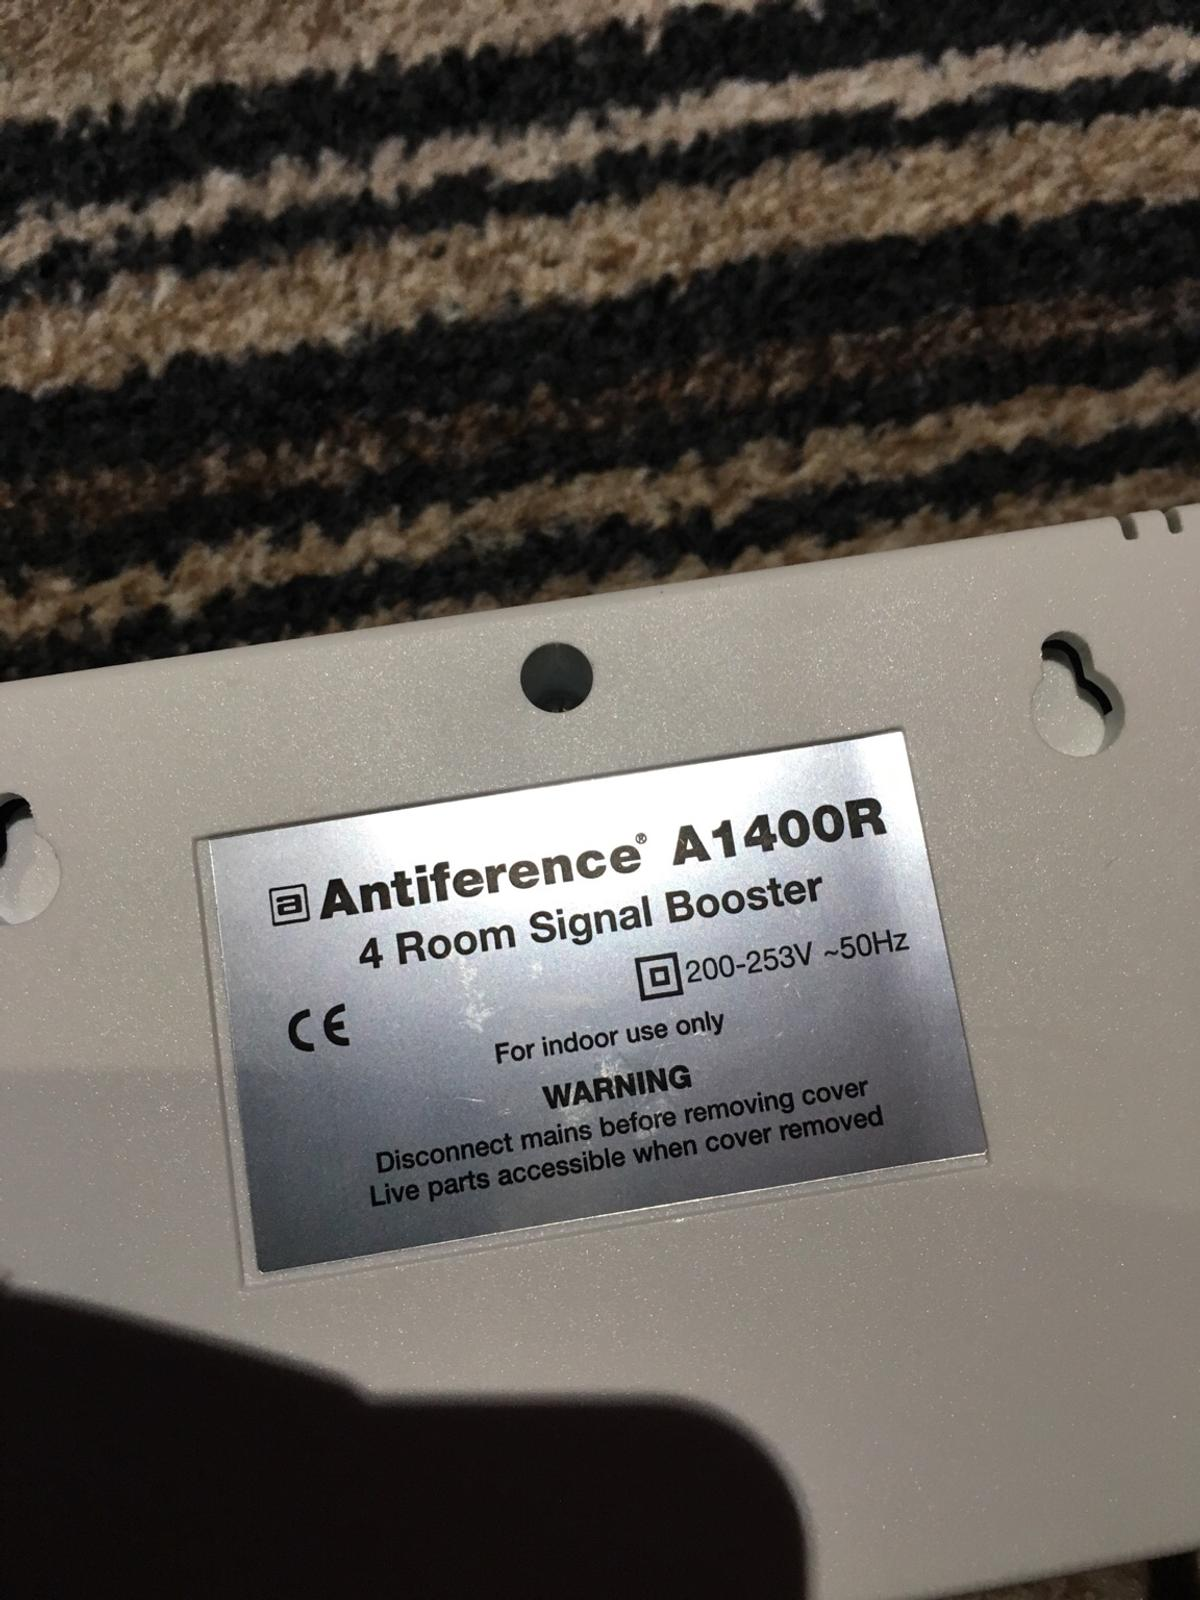 Tv Antiference A1400R 4 room signal booster